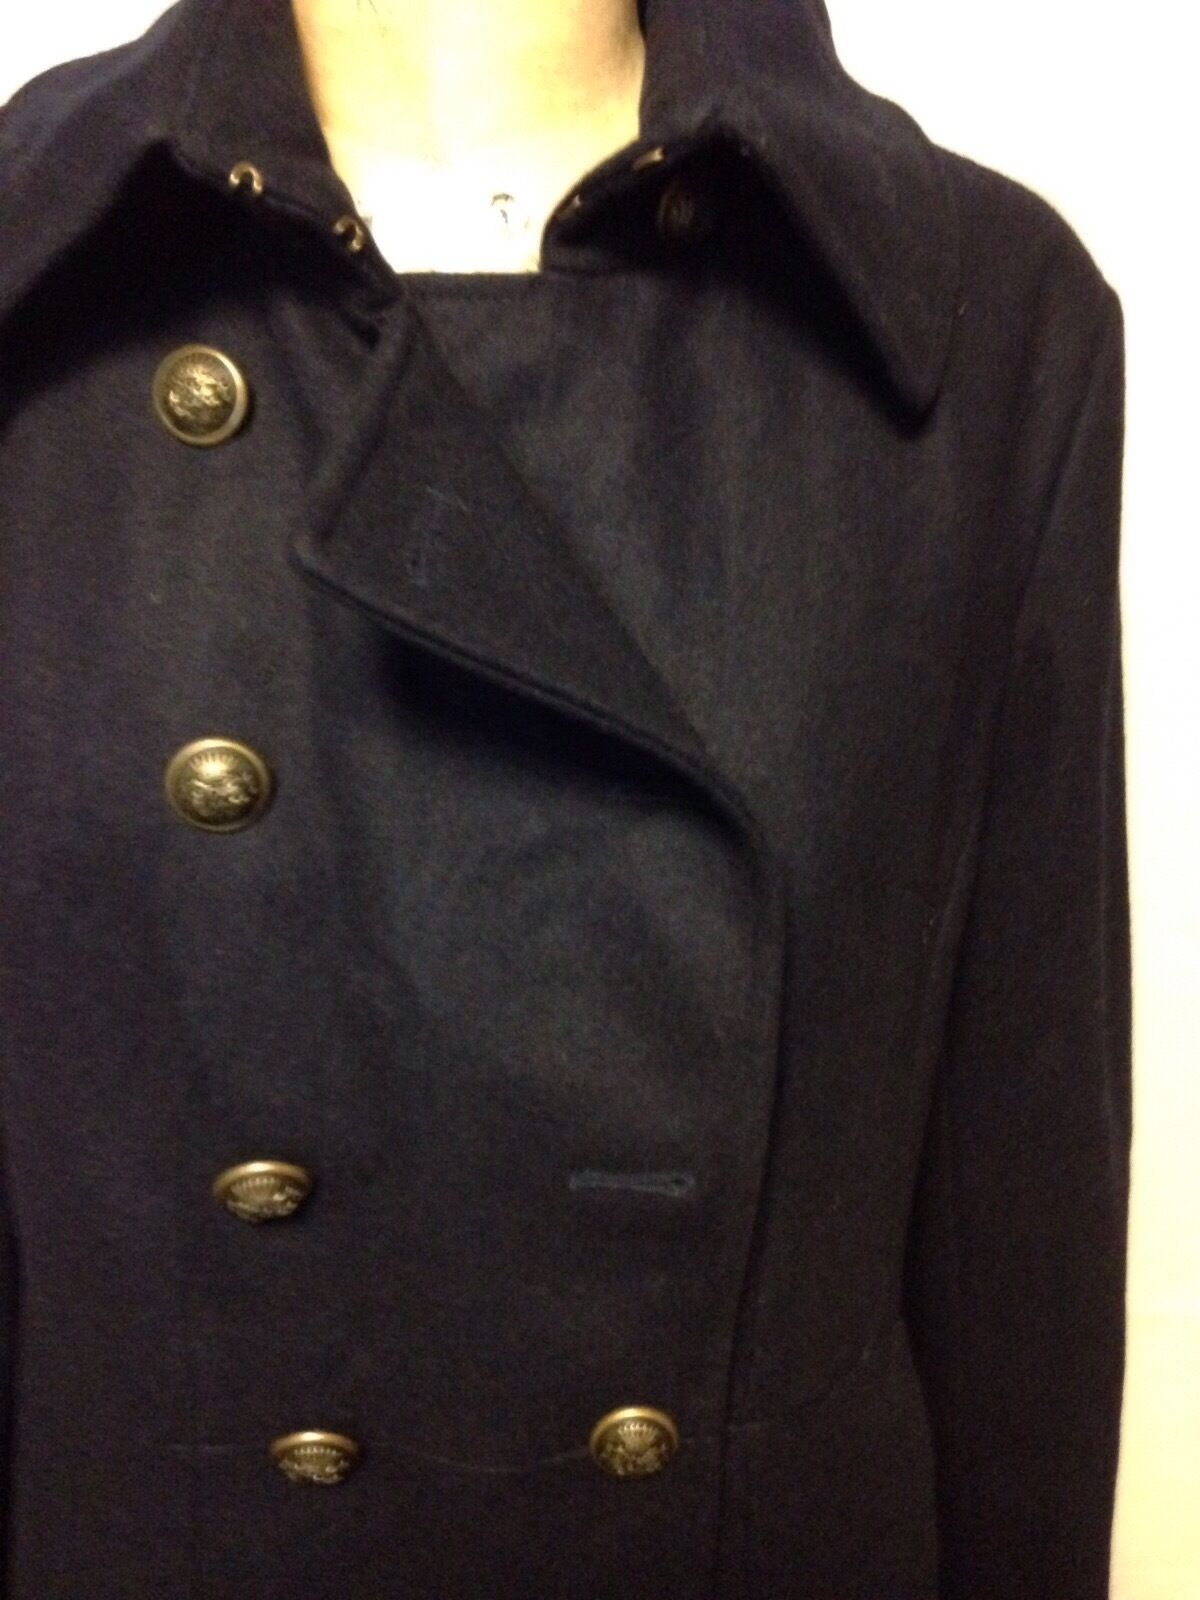 DKNY Double Breasted Military Coat 14P Midnight Midnight Midnight bluee MISSING BUTTON New w Defect 679701